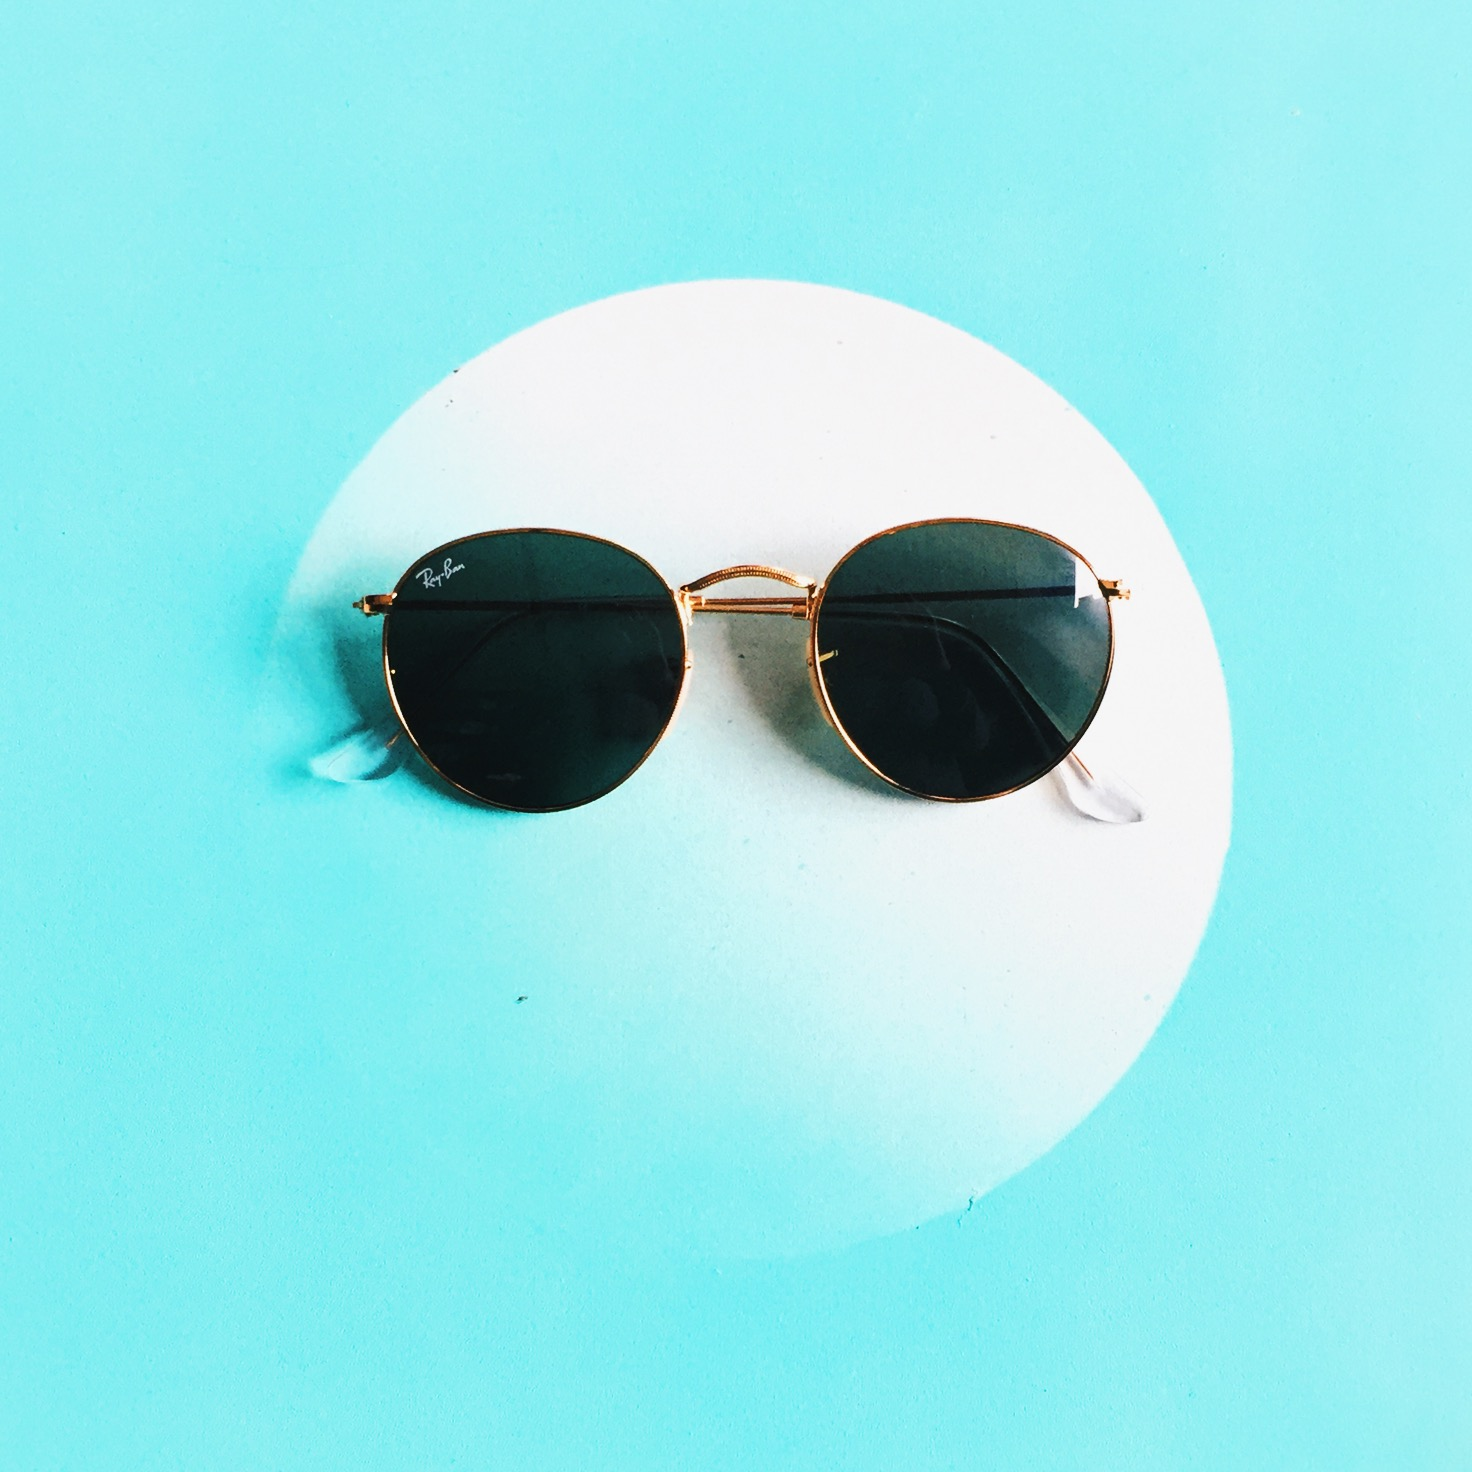 ray ban retro round sunglasses